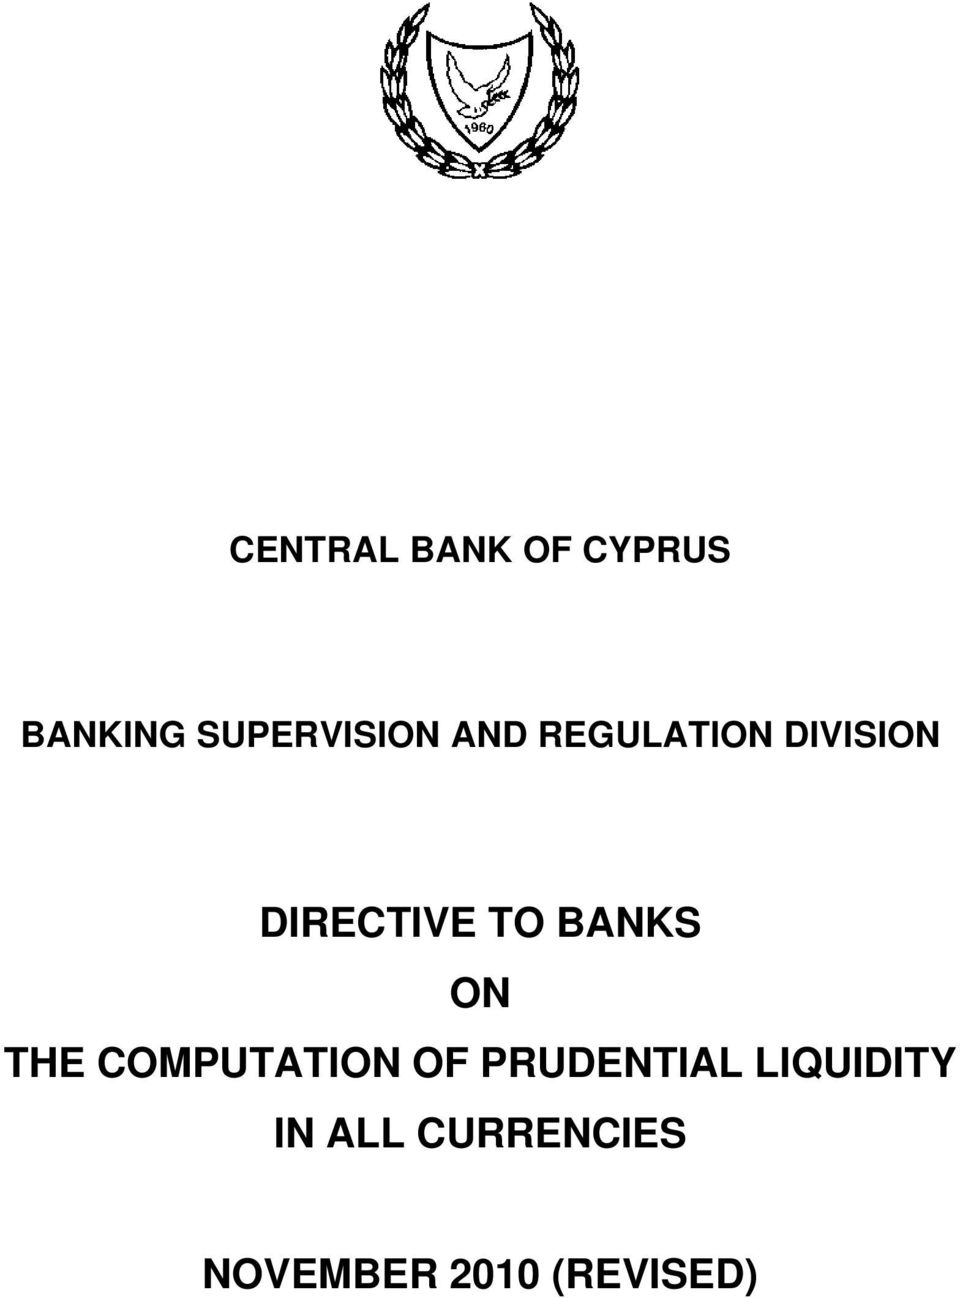 ON THE COMPUTATION OF PRUDENTIAL LIQUIDITY